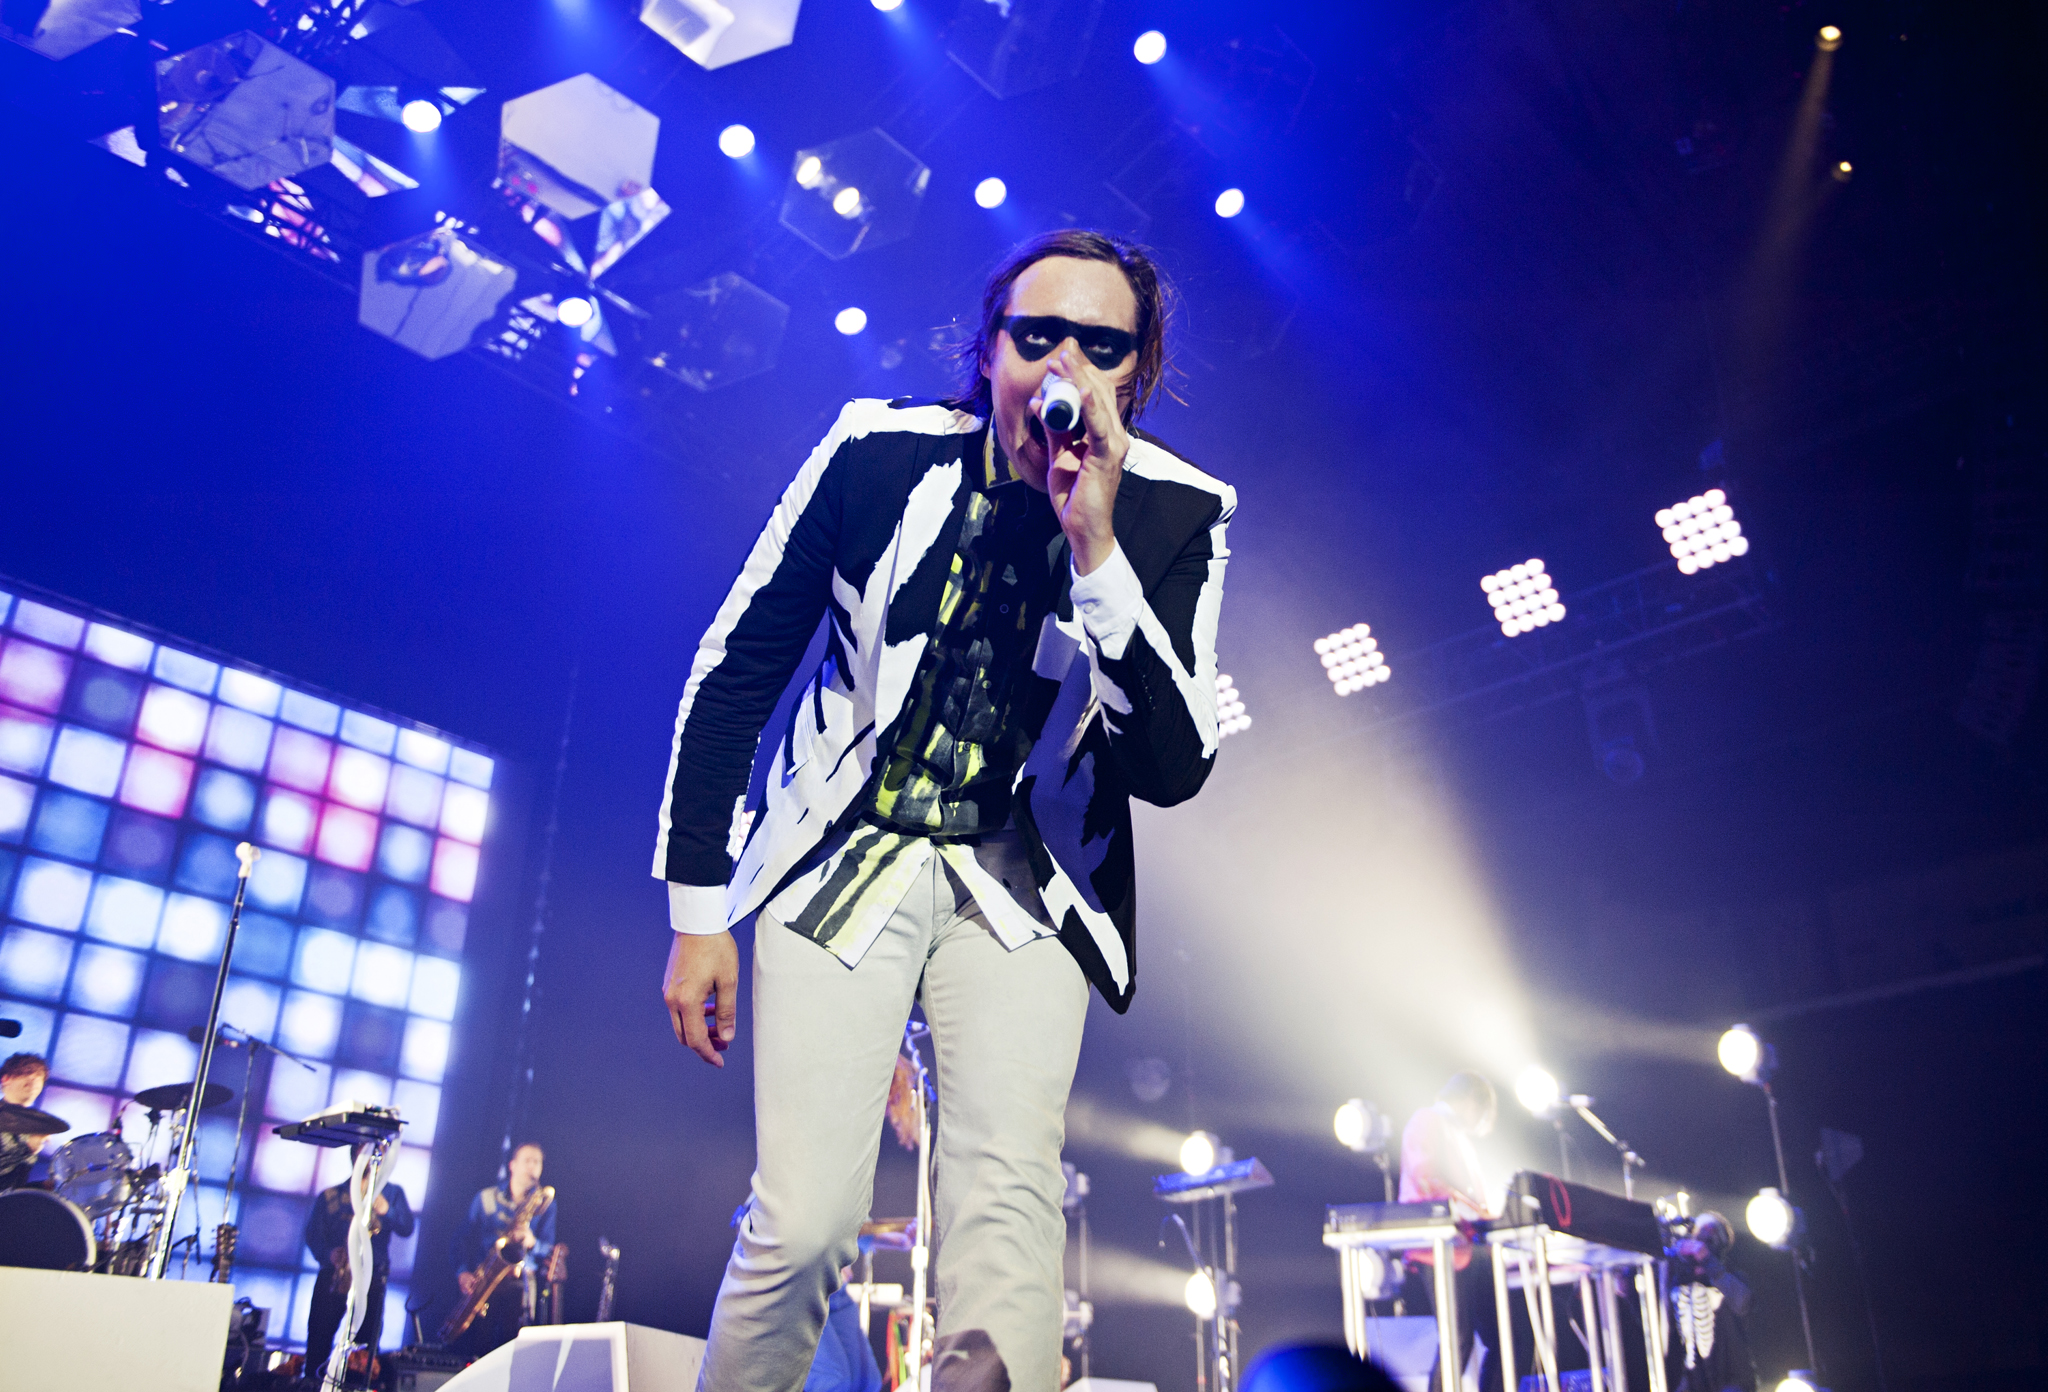 Take cover: The best and worst of Arcade Fire's 'Reflektour' tributes